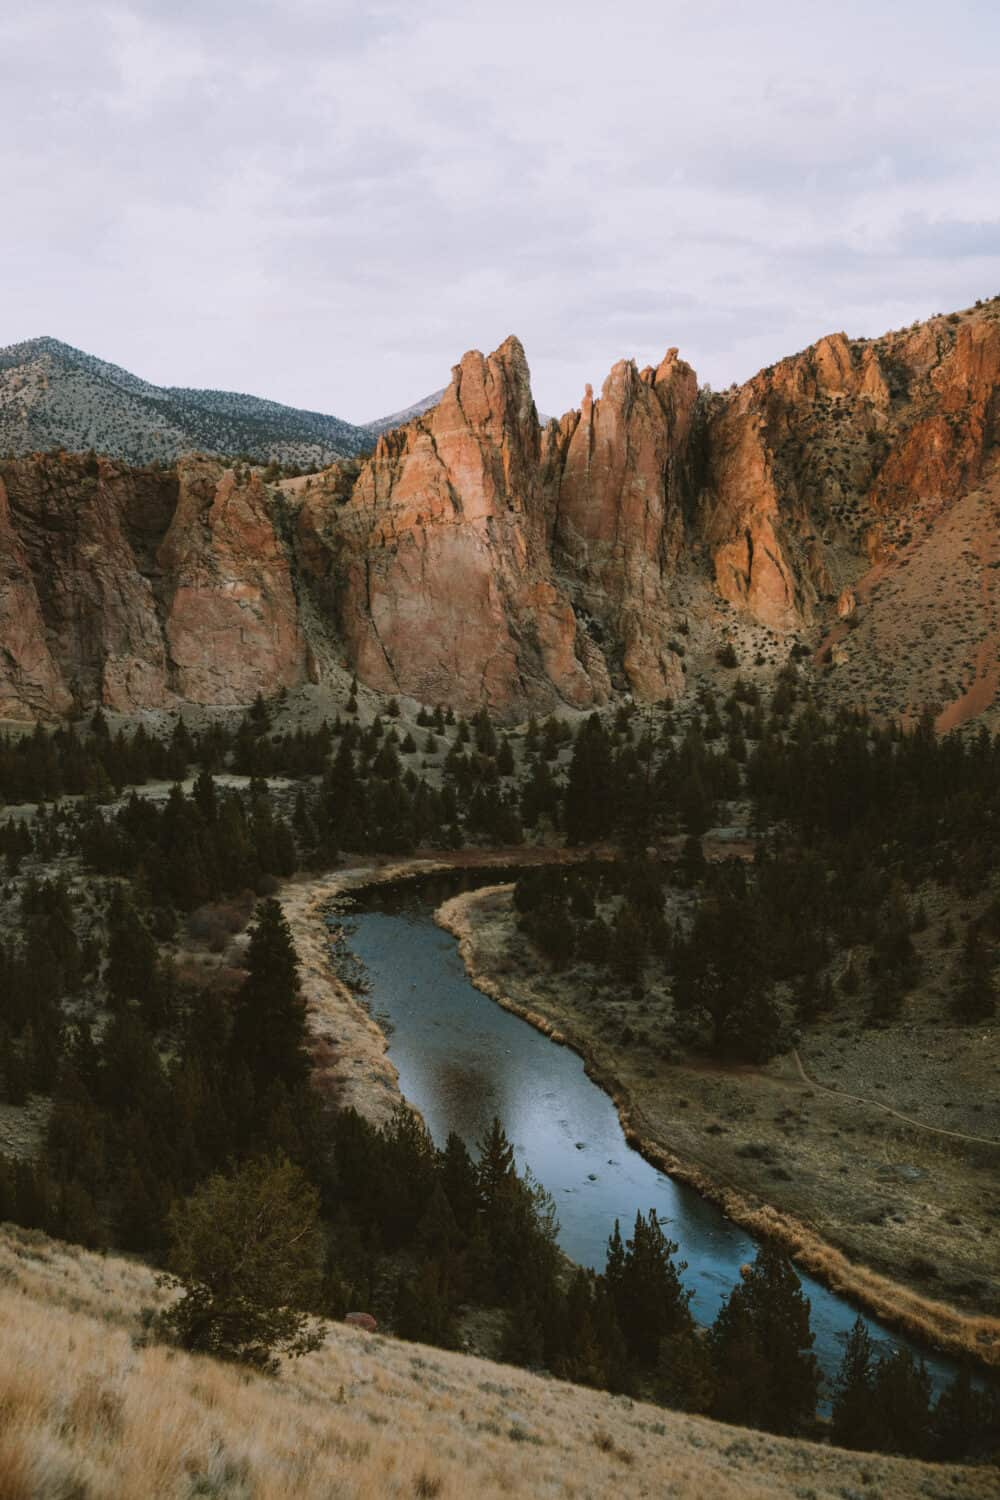 Eastern Oregon Road Trip Route - Smith Rock State Park